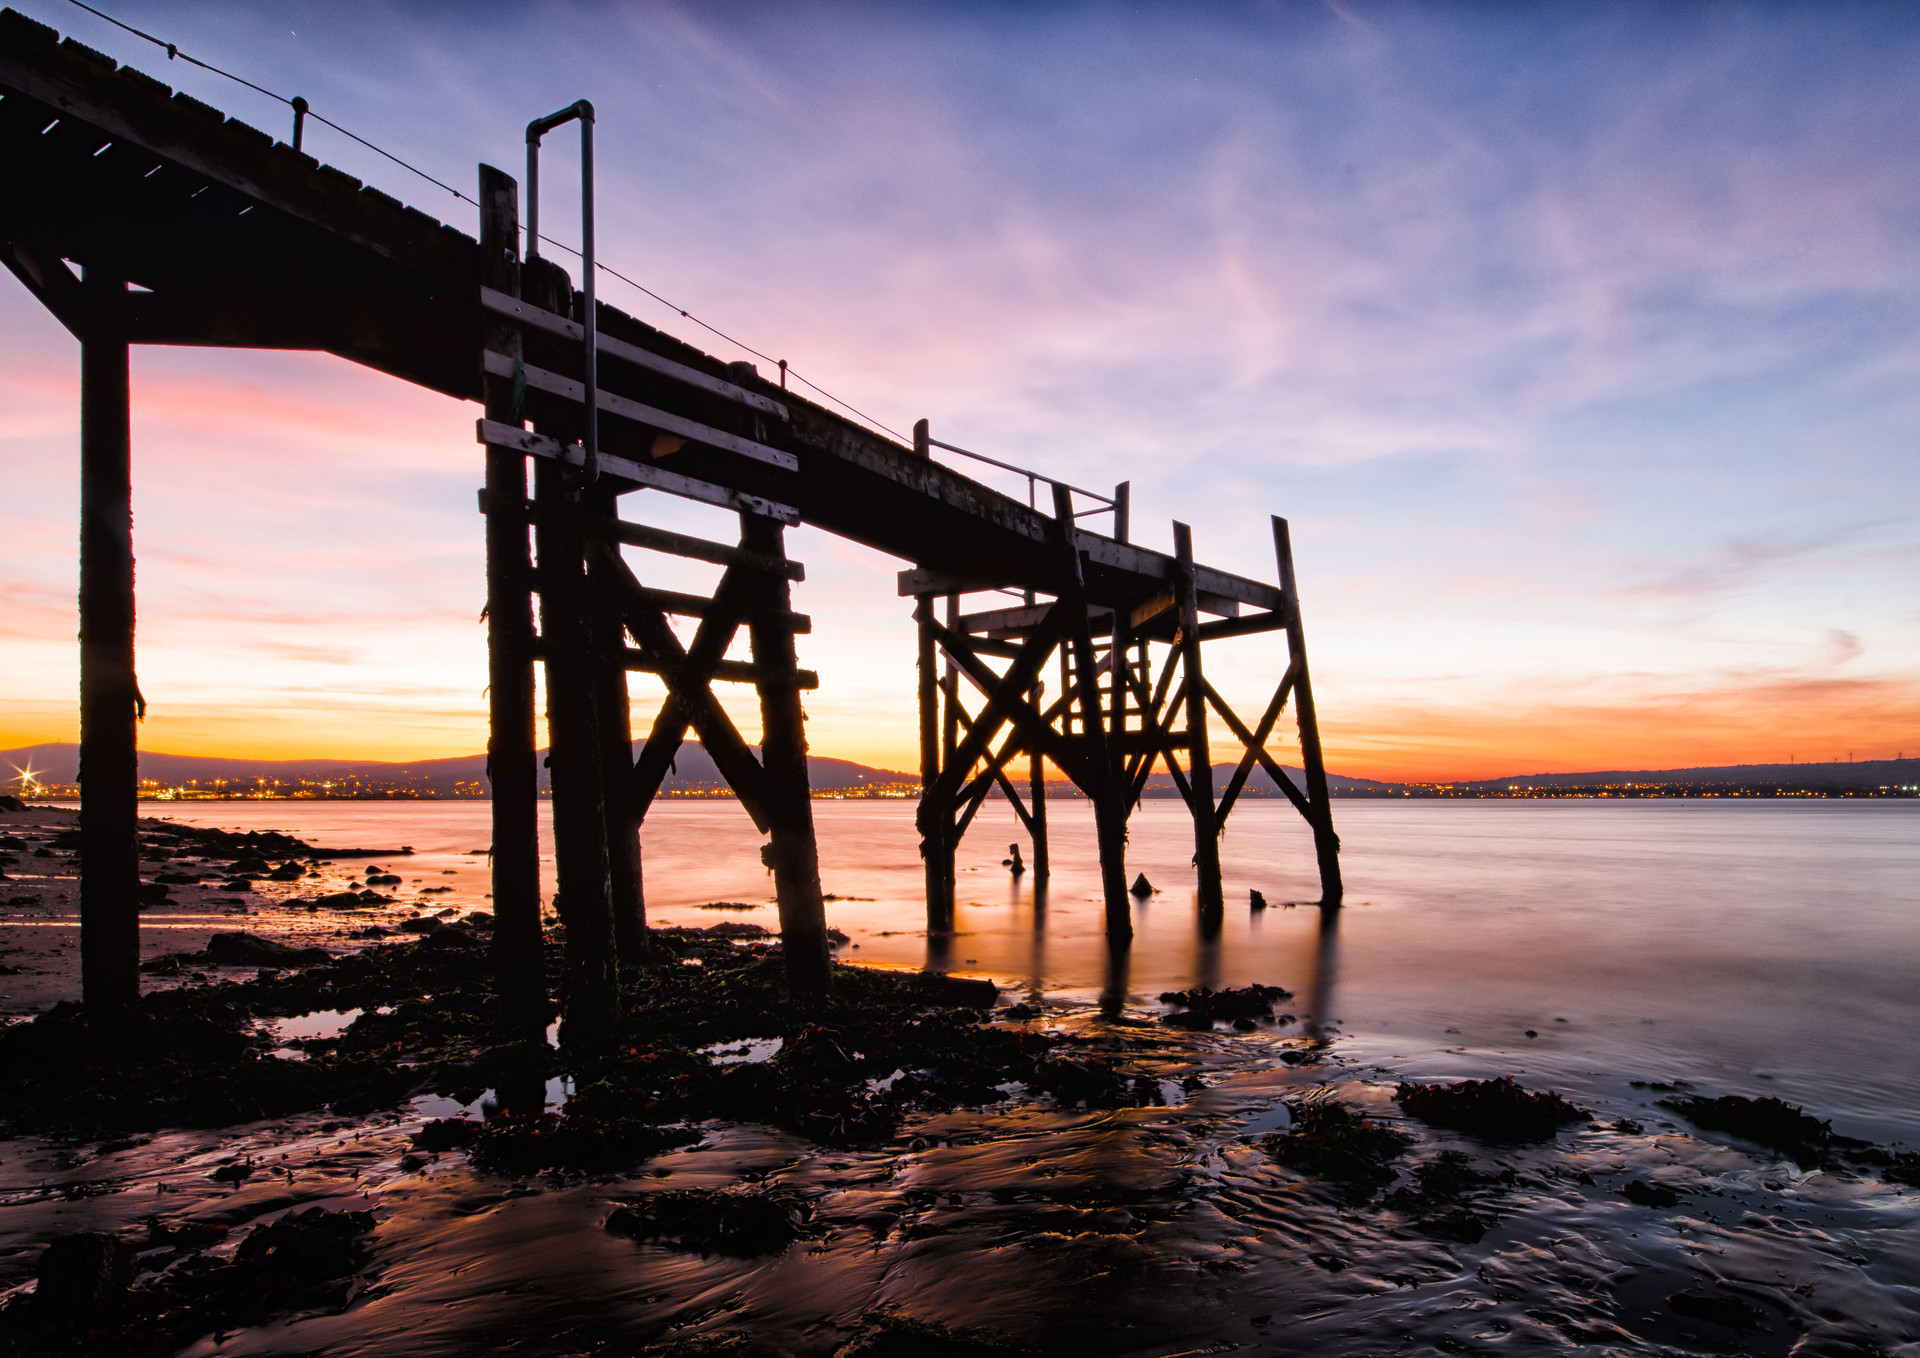 PDI - The Old Pier by Albert Boyle (7 marks)